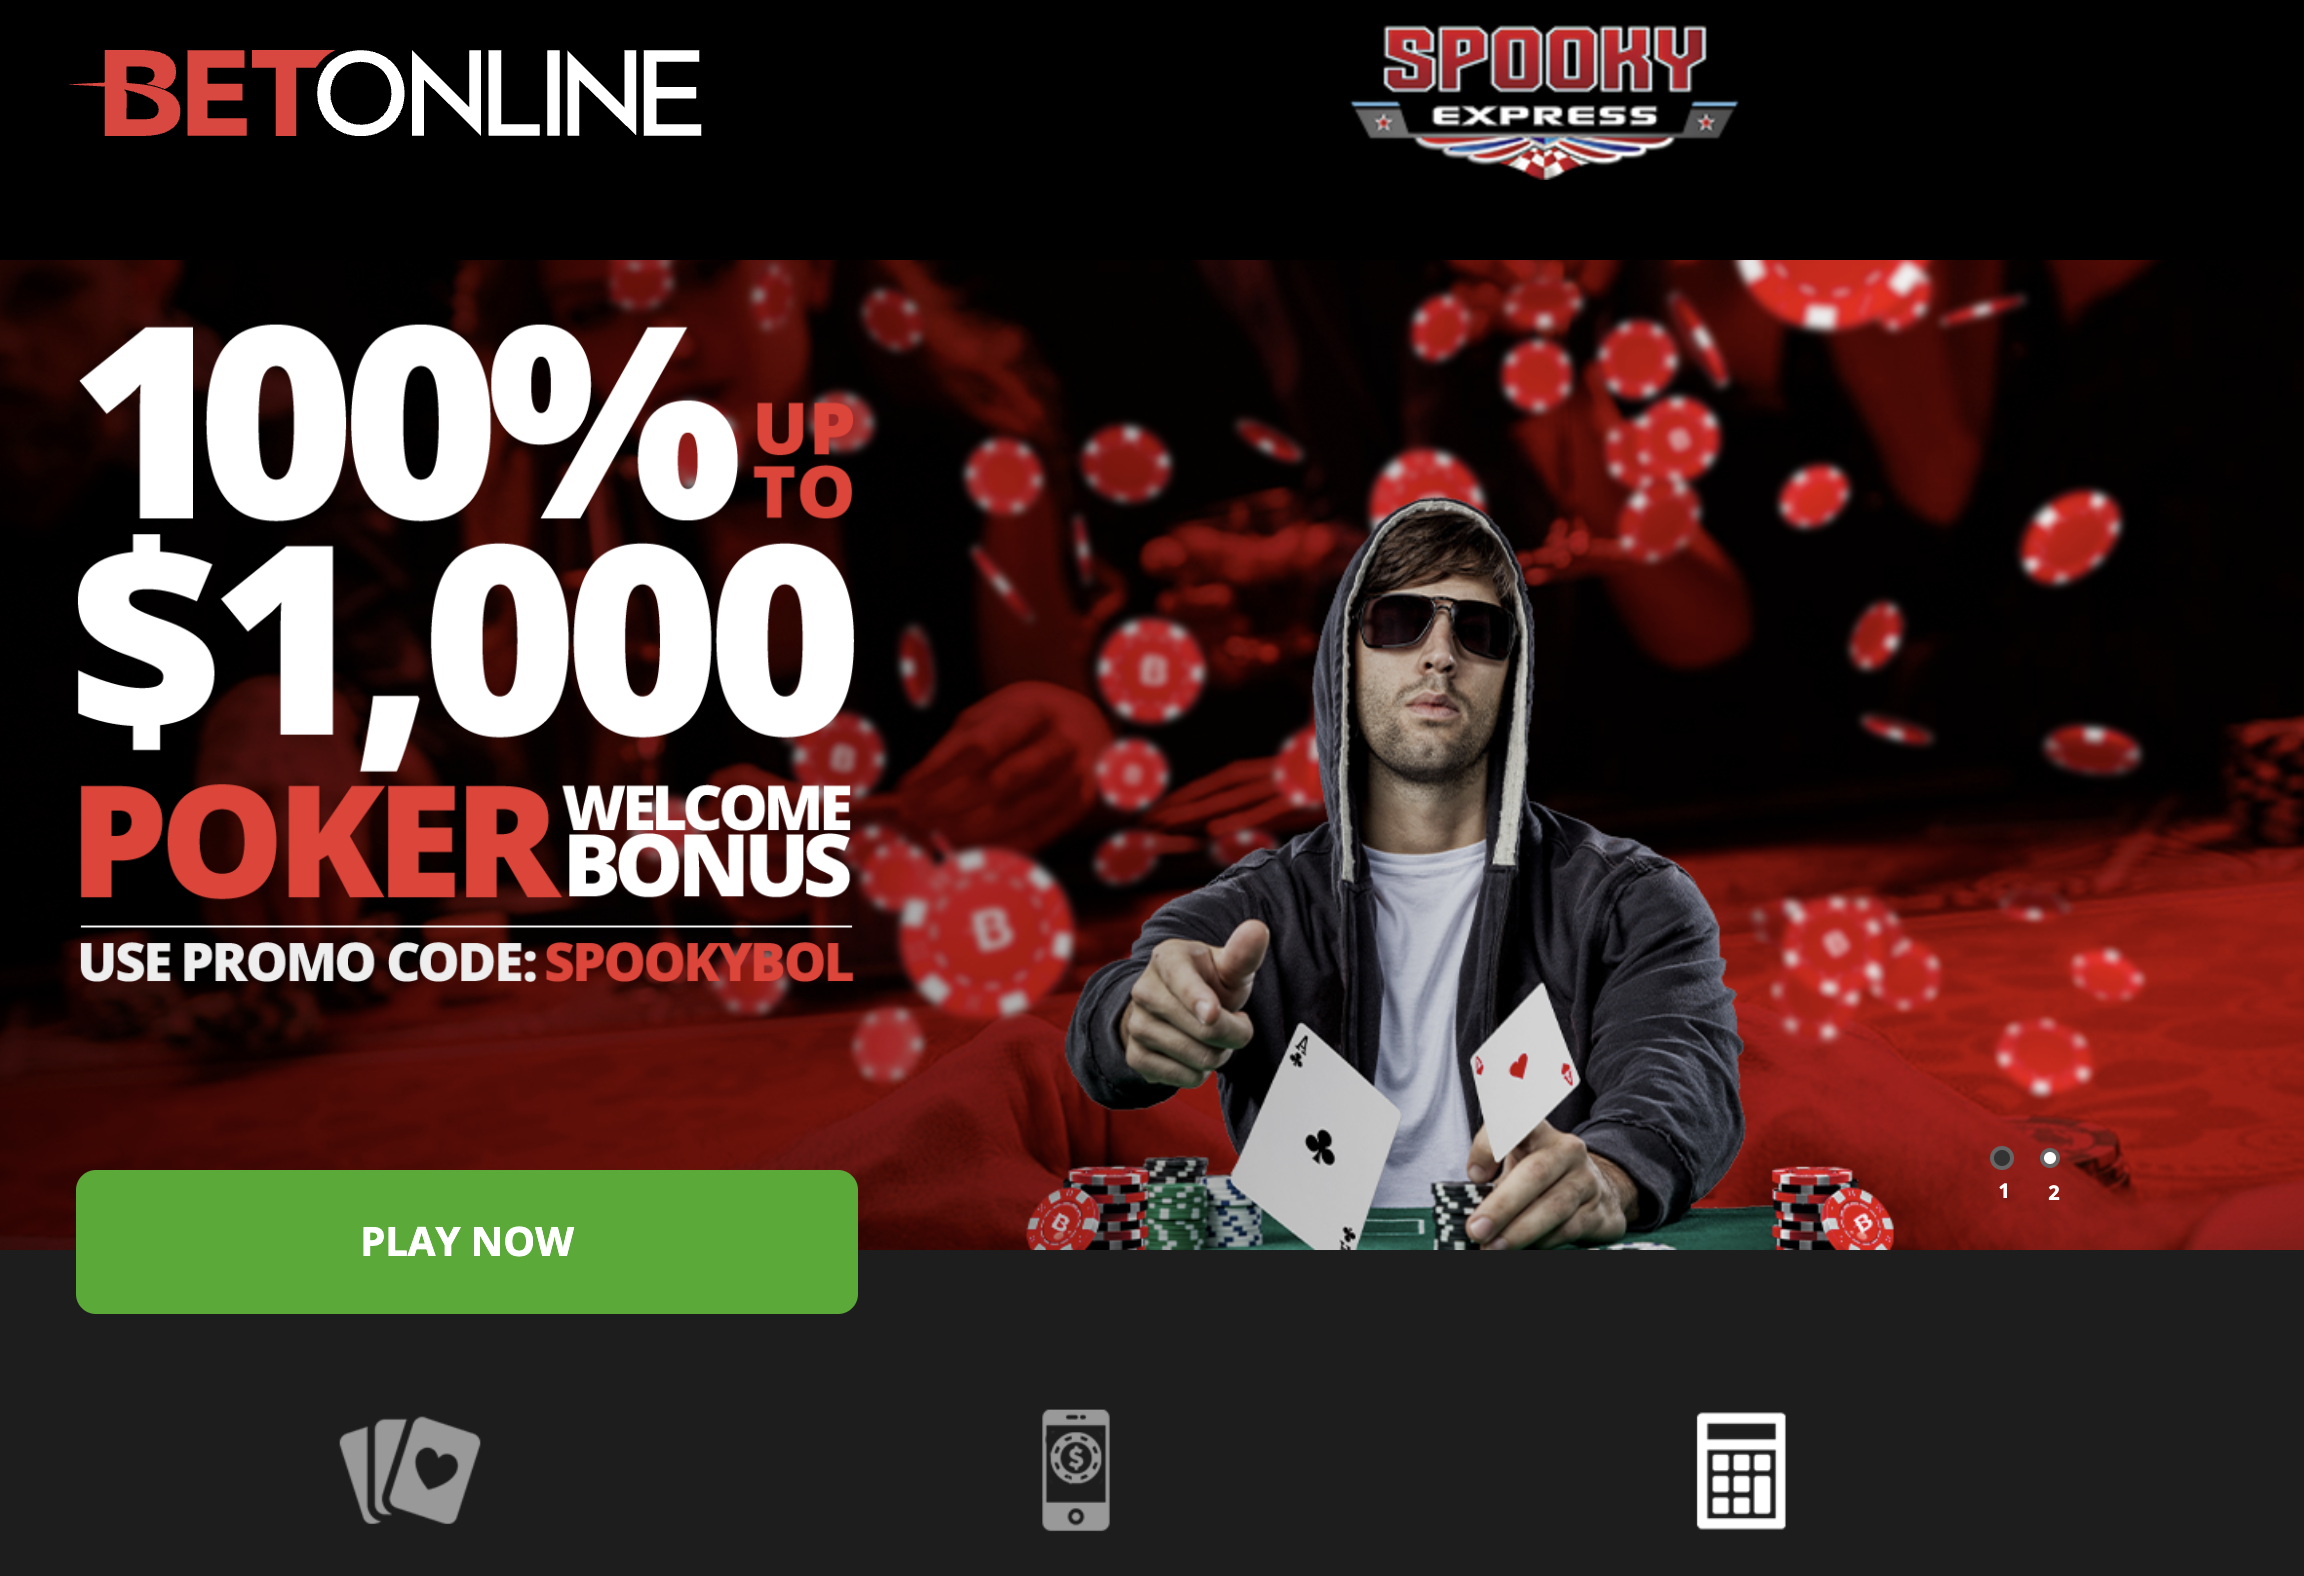 GET YOUR 75% BONUS AT BETONLINE The only way to get a 75% Bonus when you open  your BetOnline Account with Promo Code SPOOKY75. Click Here For Your 75%  BetOnline Bonus